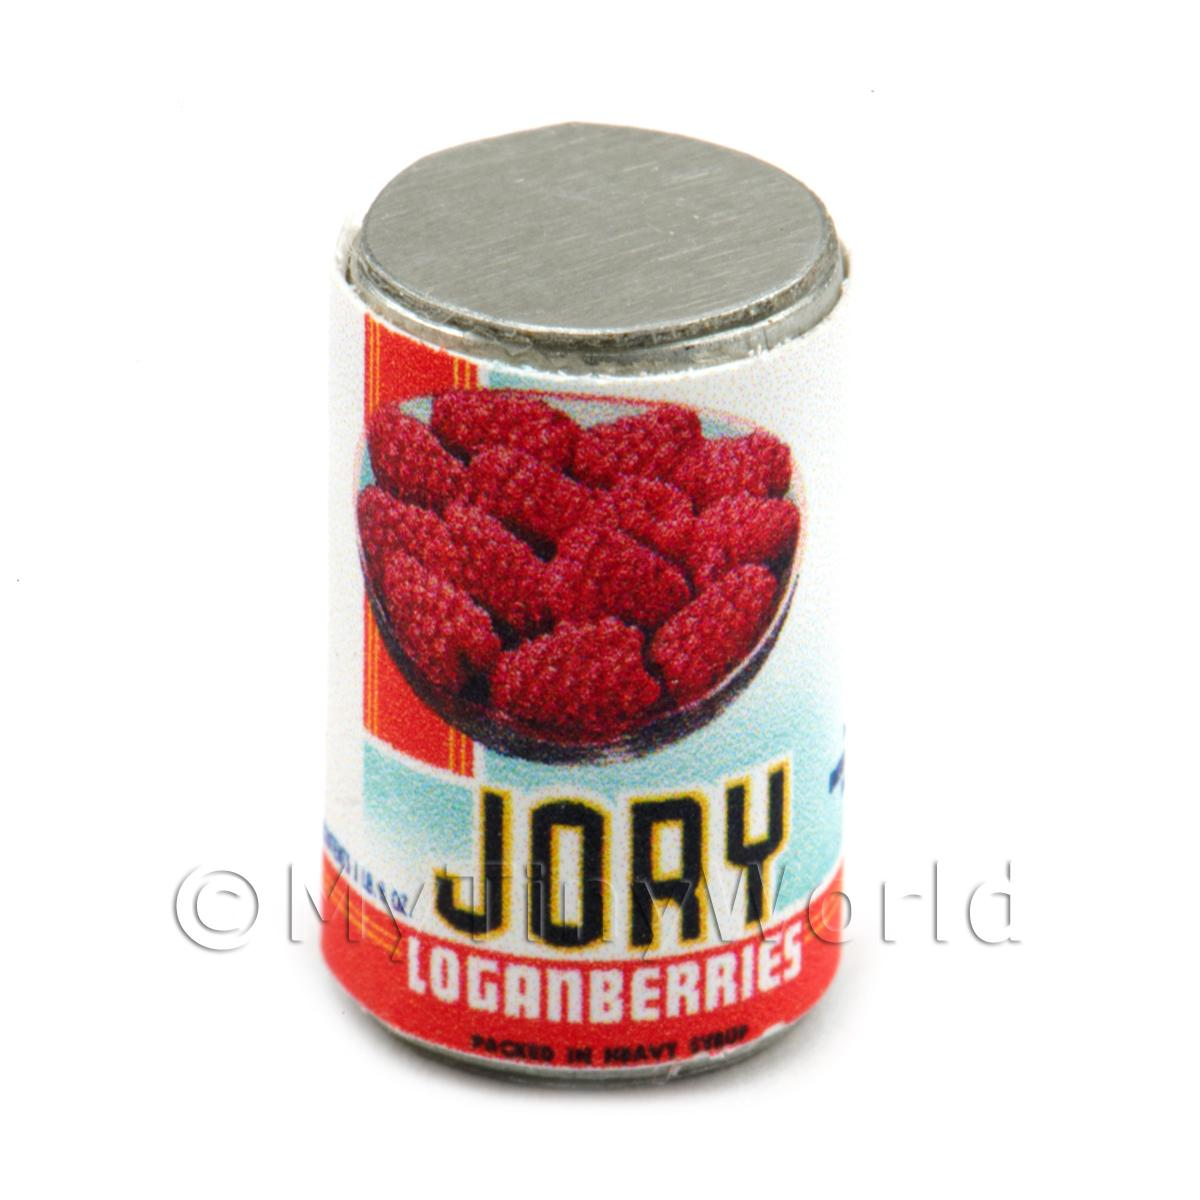 Dolls House Miniature Jory Brand Loganberries  Can (1930s)